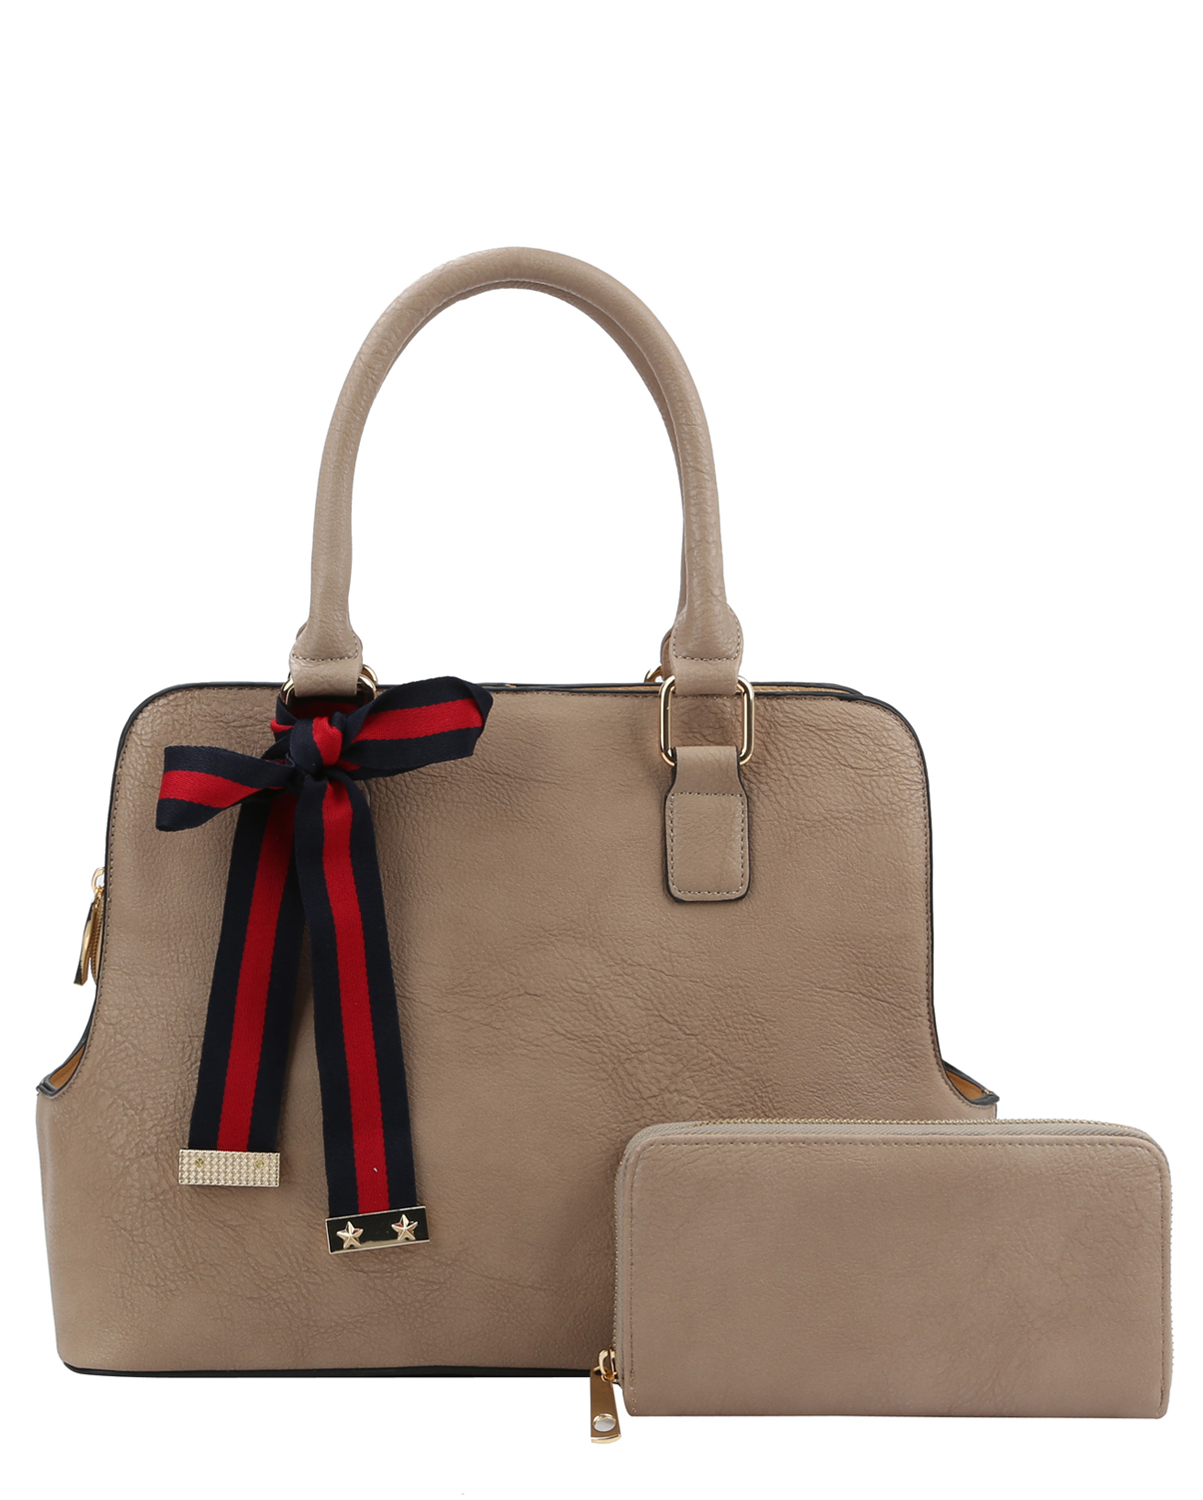 12a26350dd Get incredible discount prices on our wholesale fashion handbags today jpg  1203x1500 Mountain west handbags and